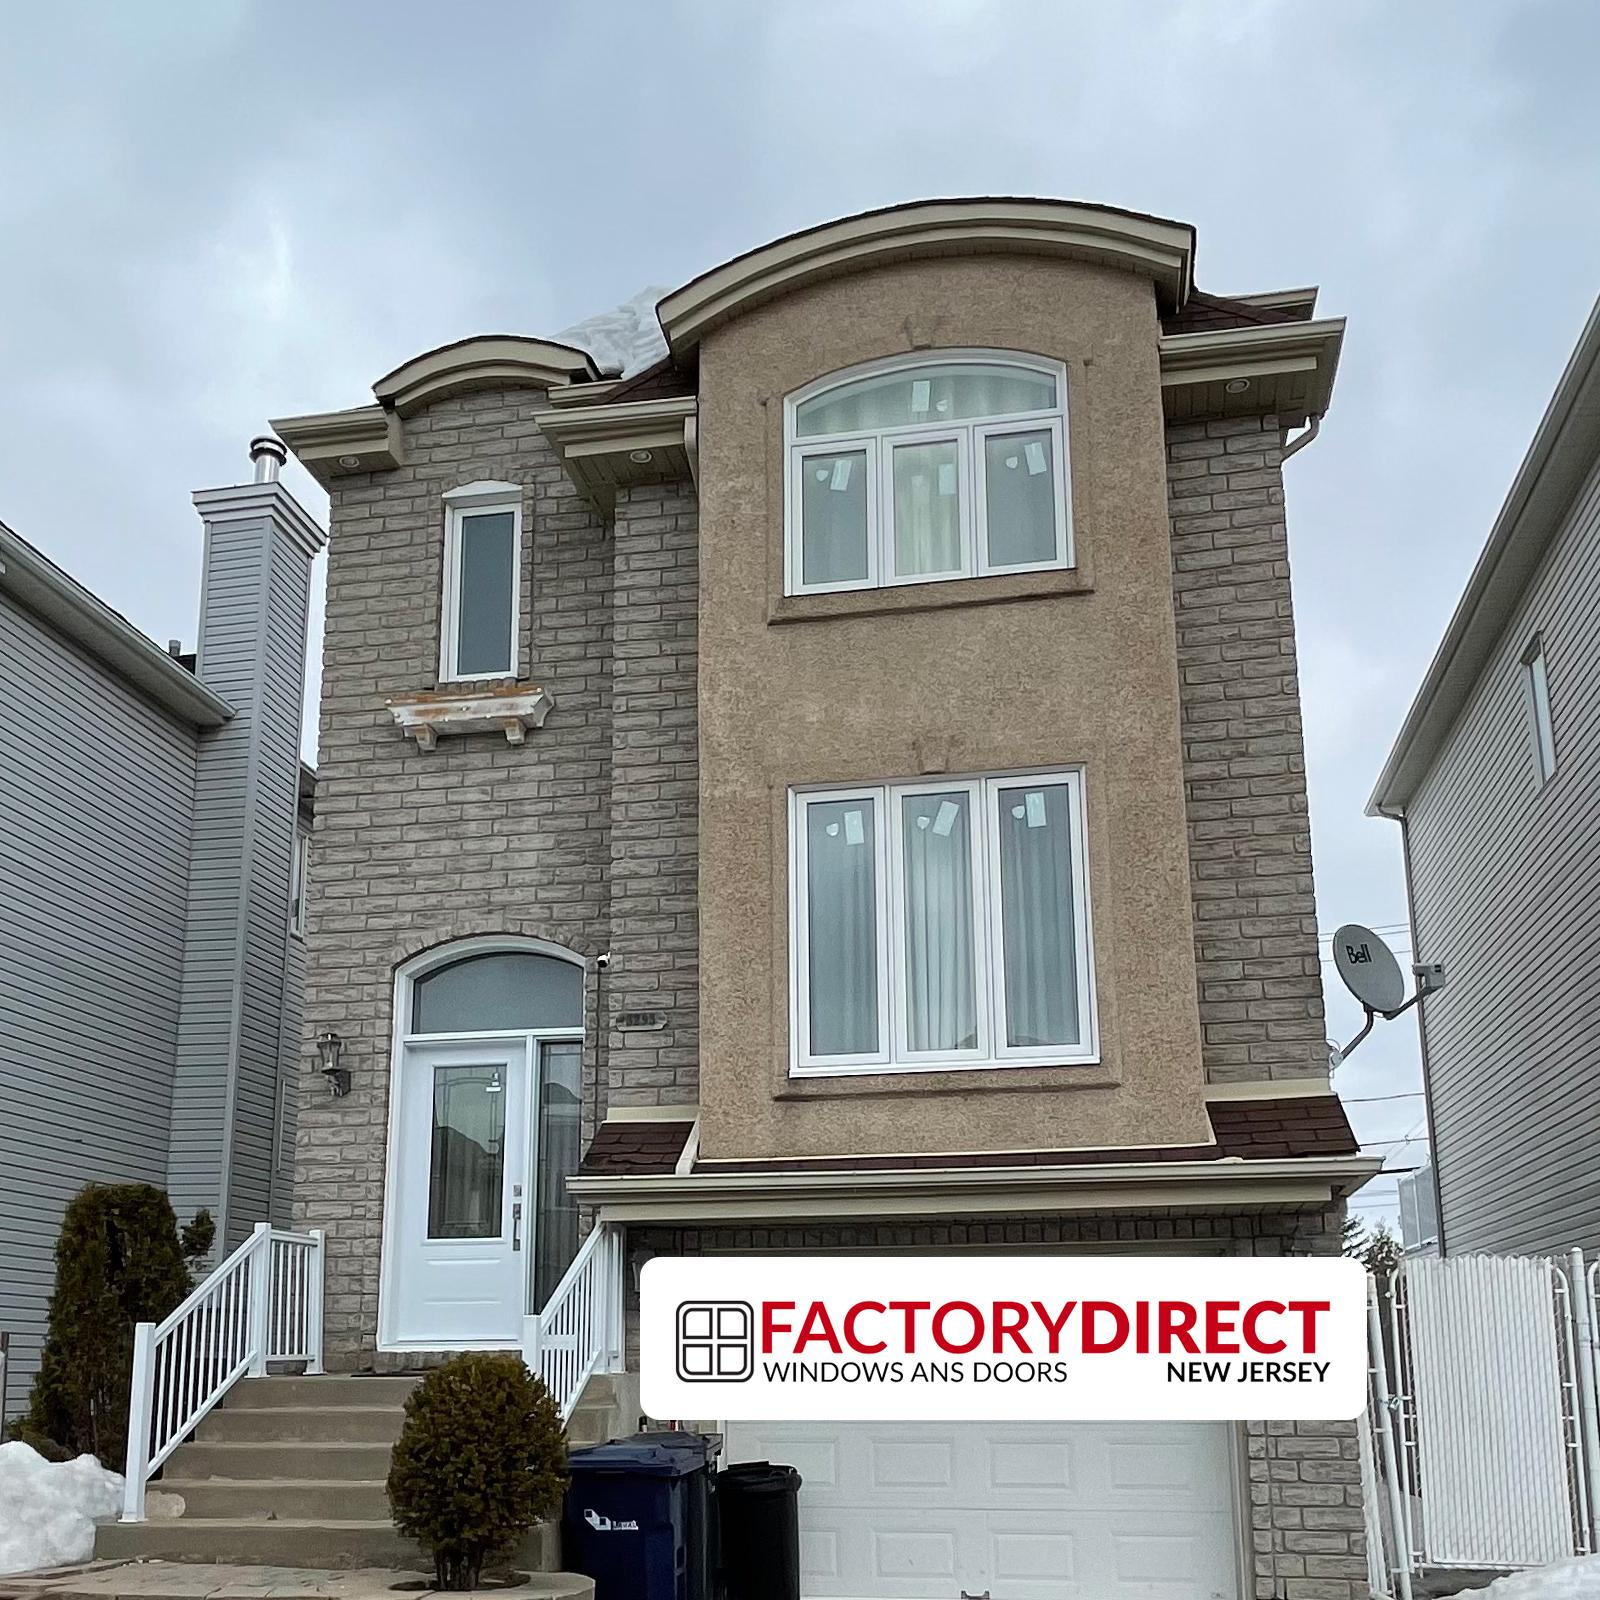 Factory Direct Windows and Doors New Jersey